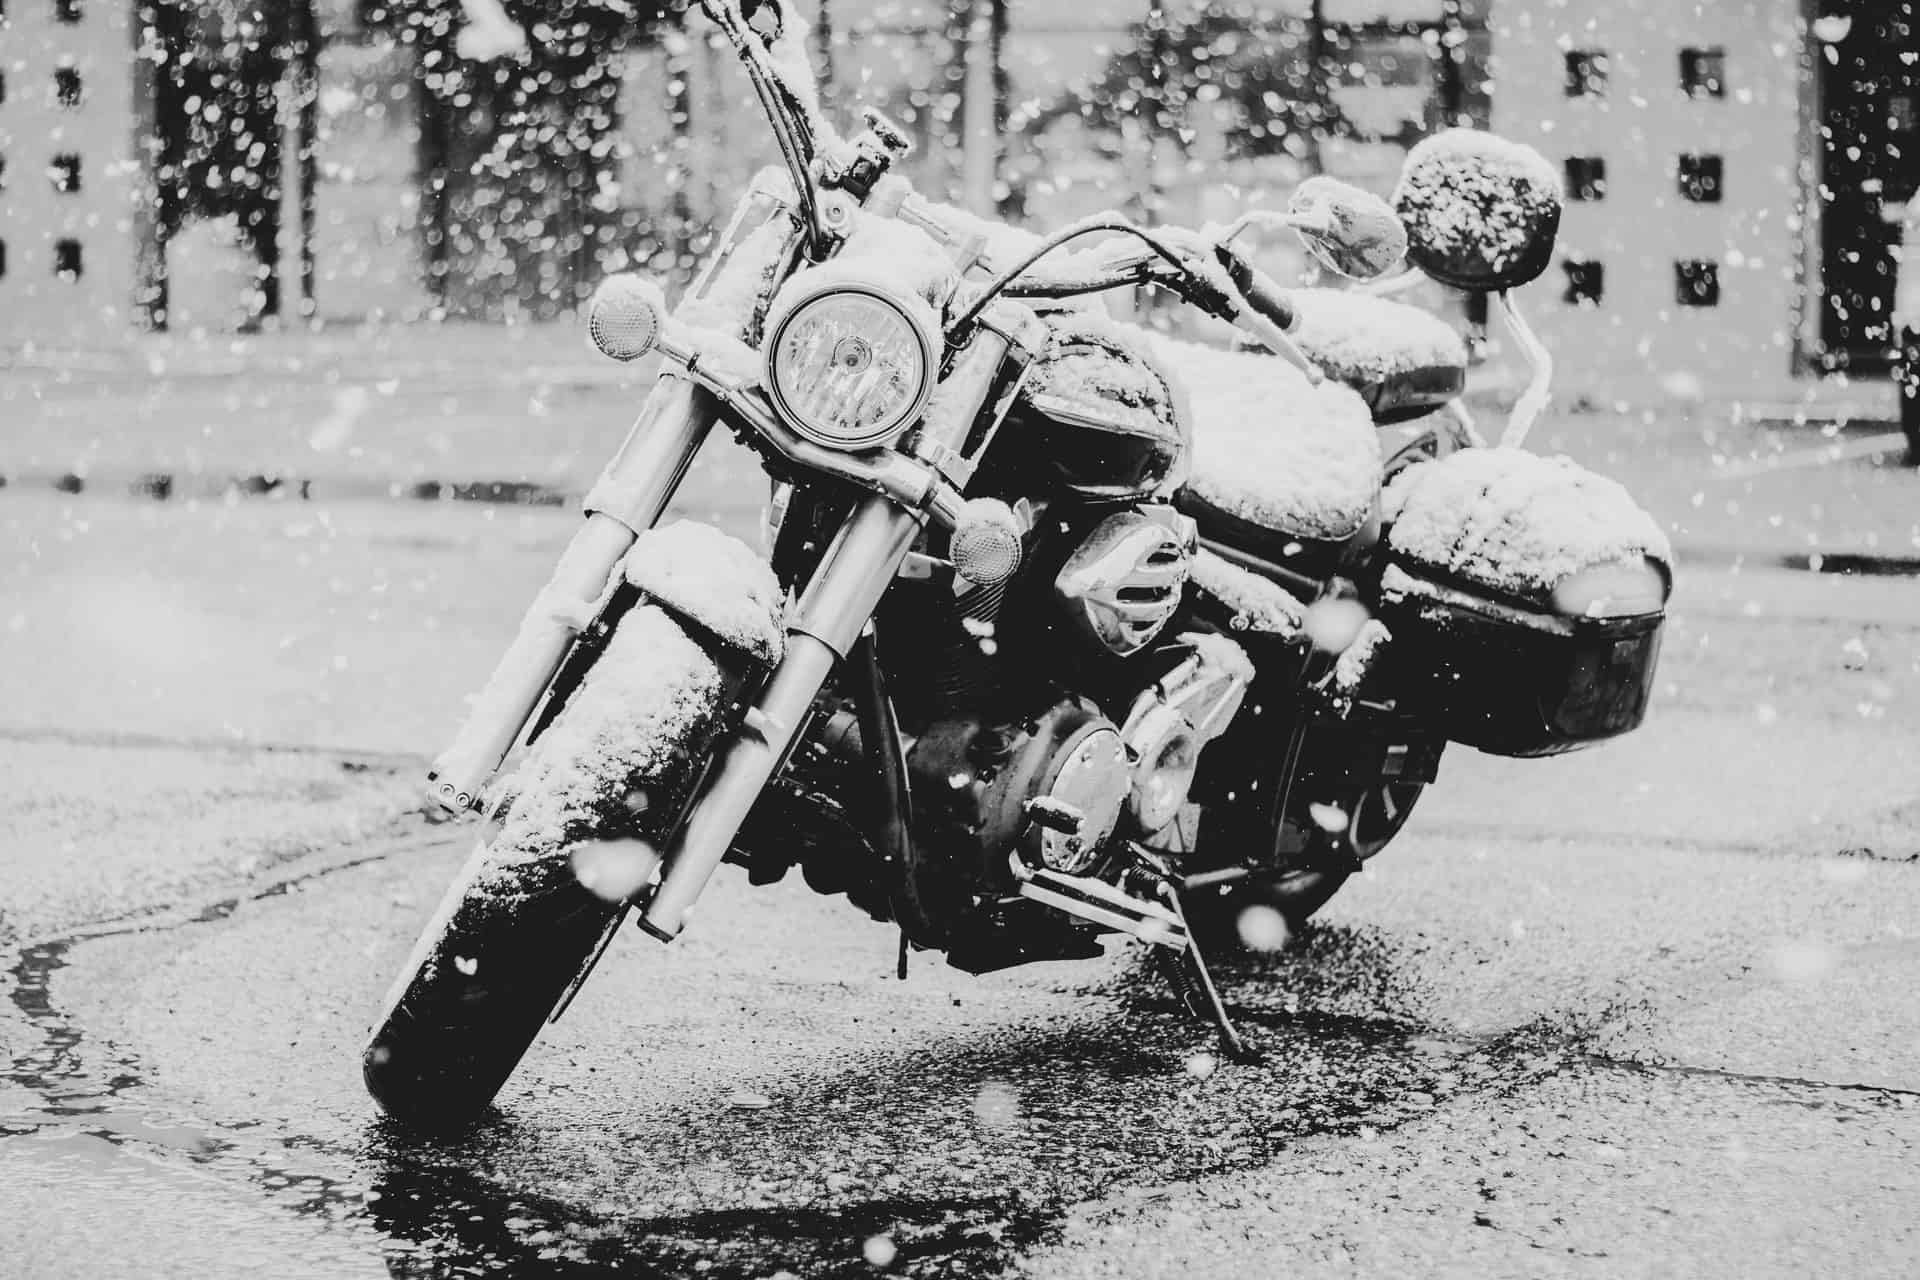 winter motorcycle wet